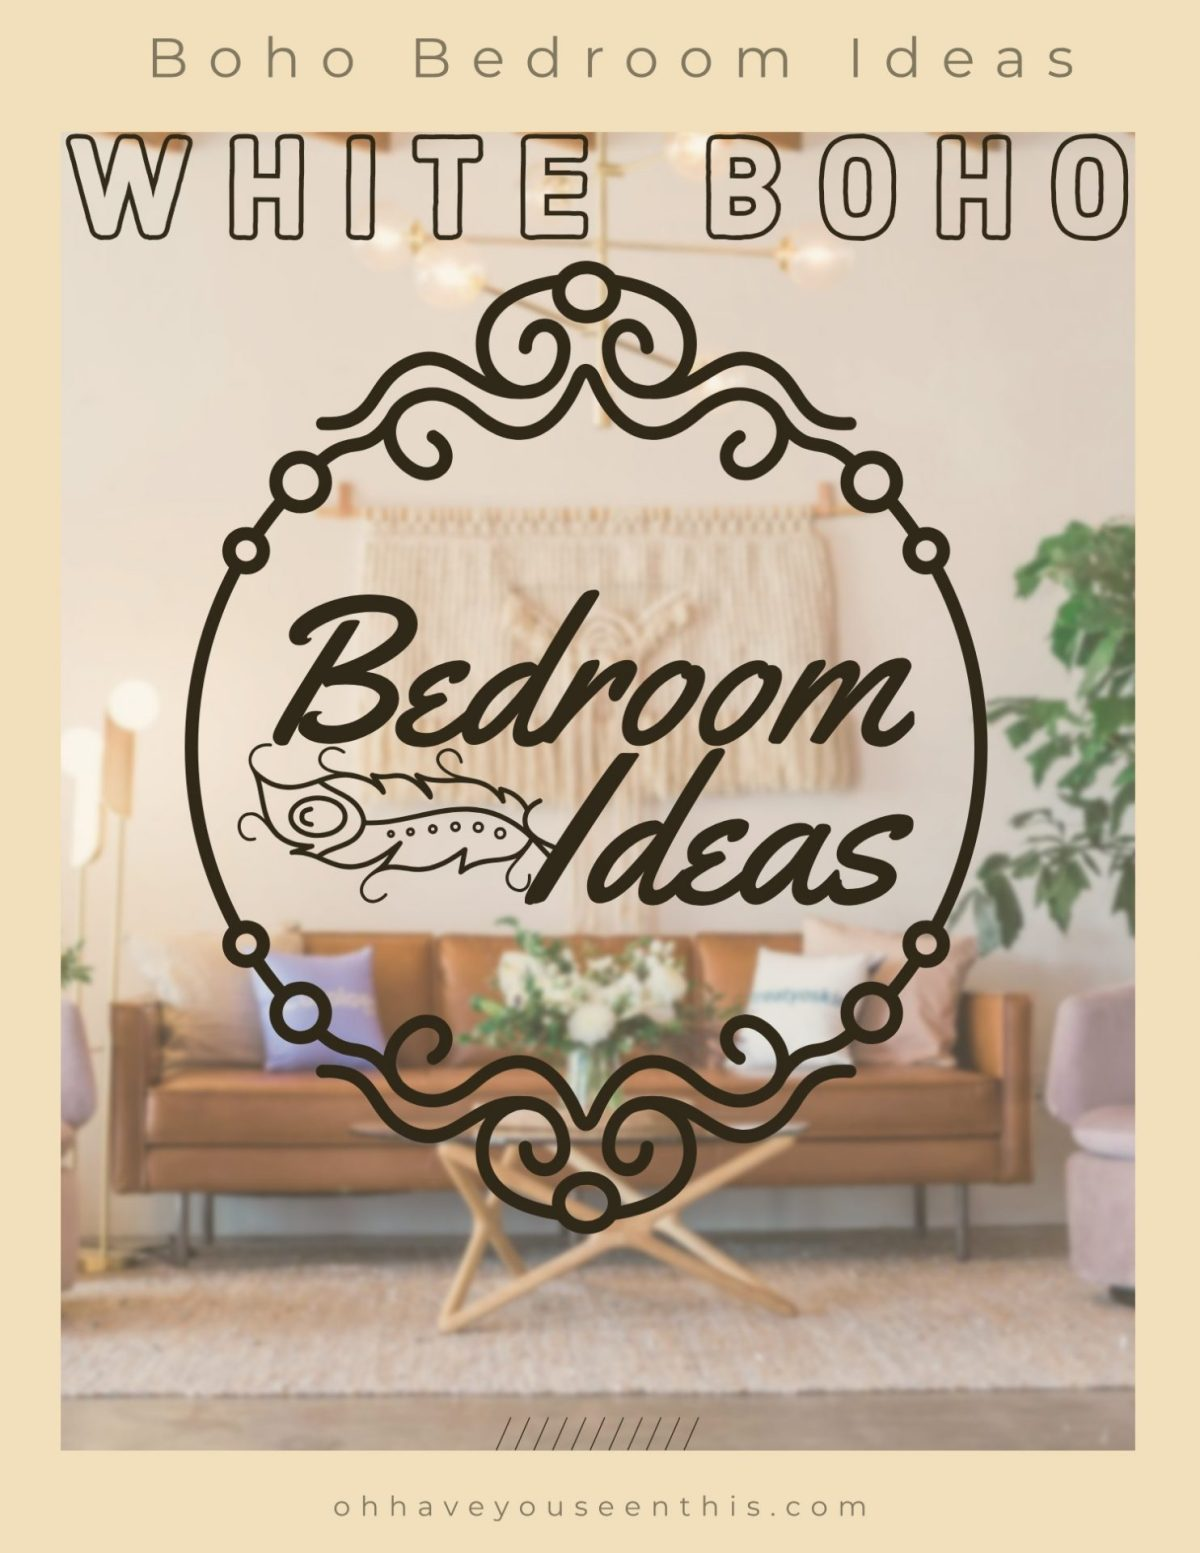 White boho bedroom ideas